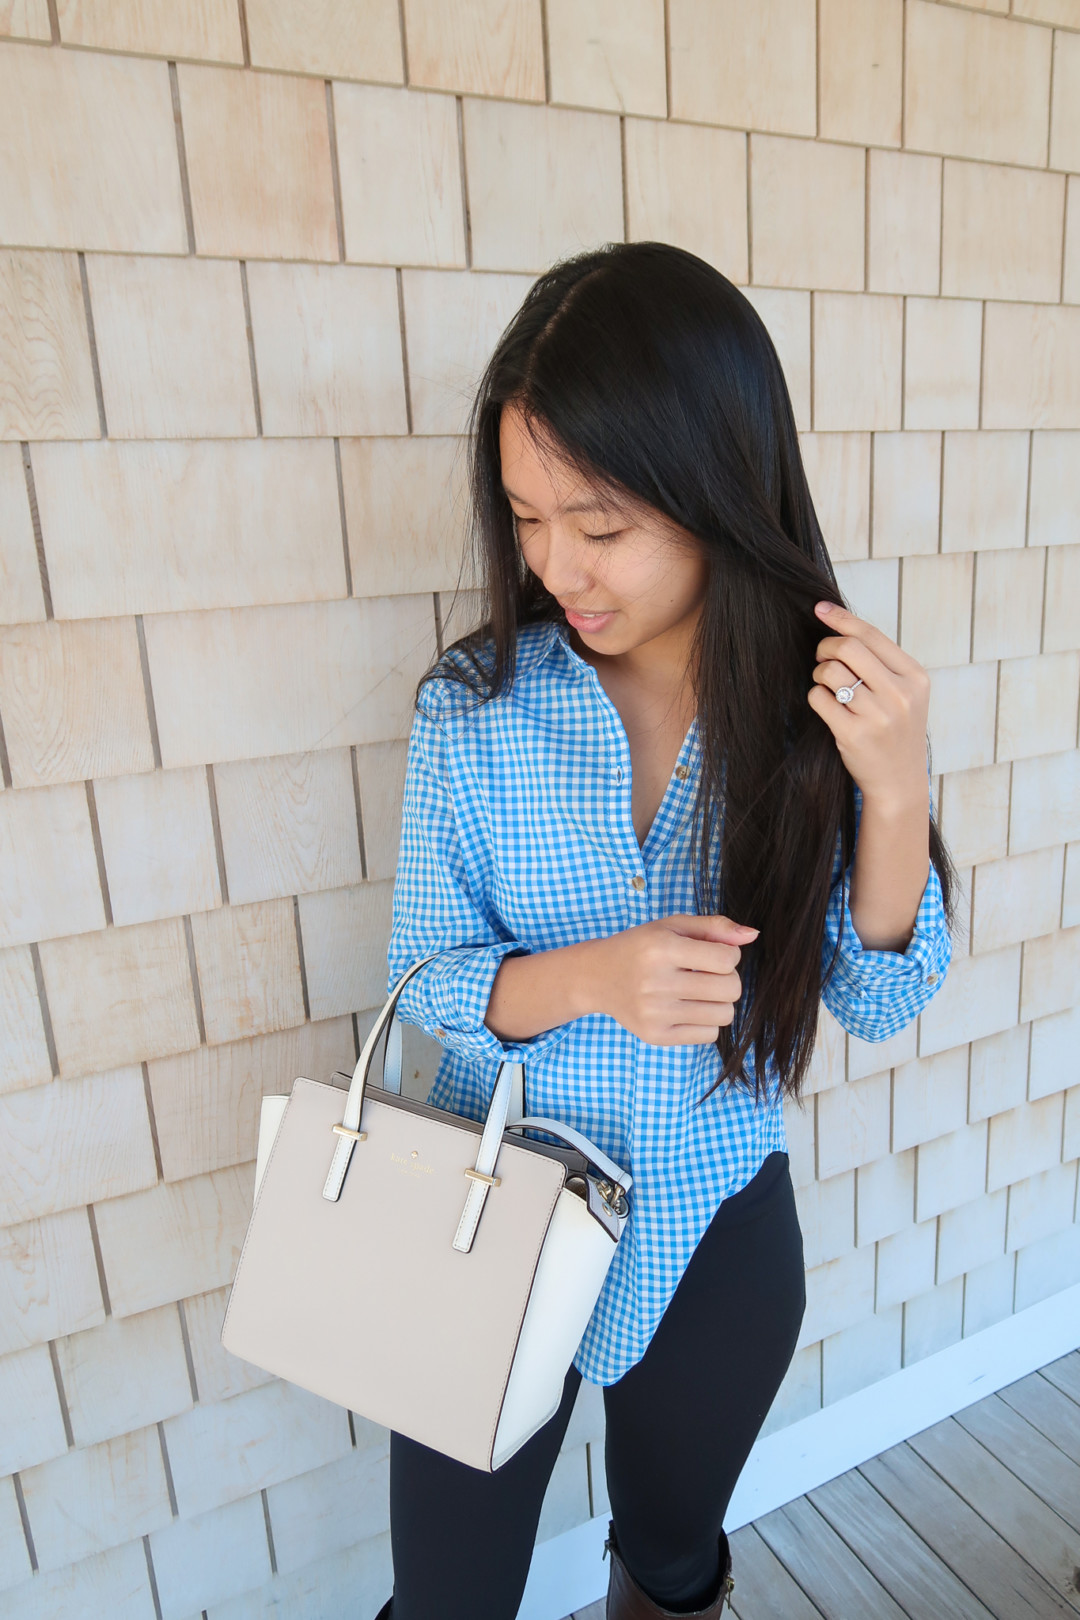 New England style: blue gingham shirt and Kate Spade purse